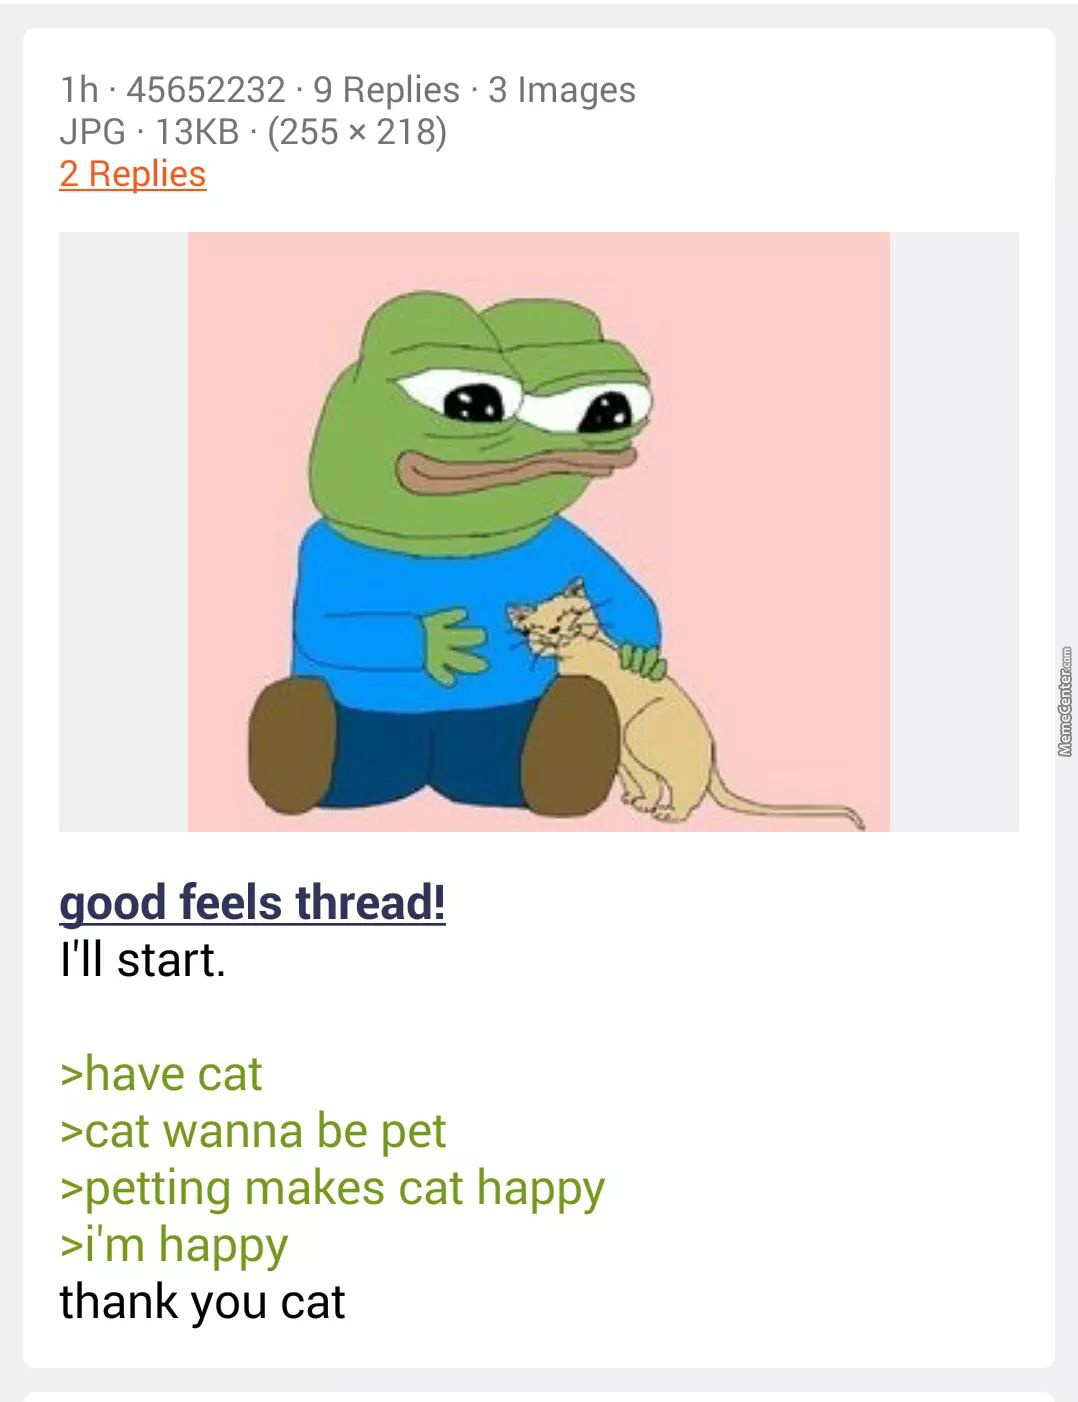 Cats Are Nice Pets